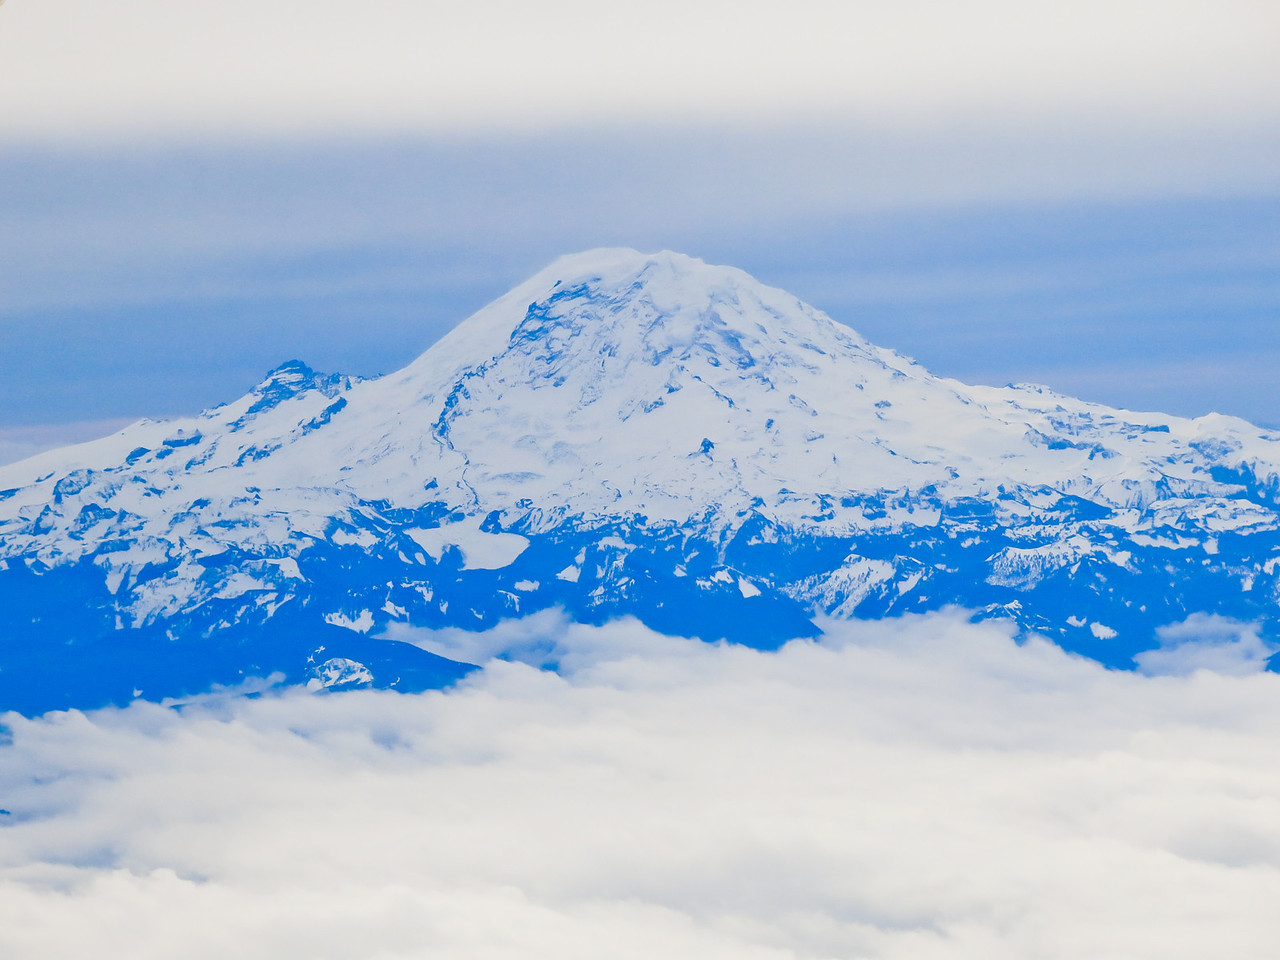 Although overcast in Seattle, it was bright and sunny at Paradise on the south flank of Mount Rainier.